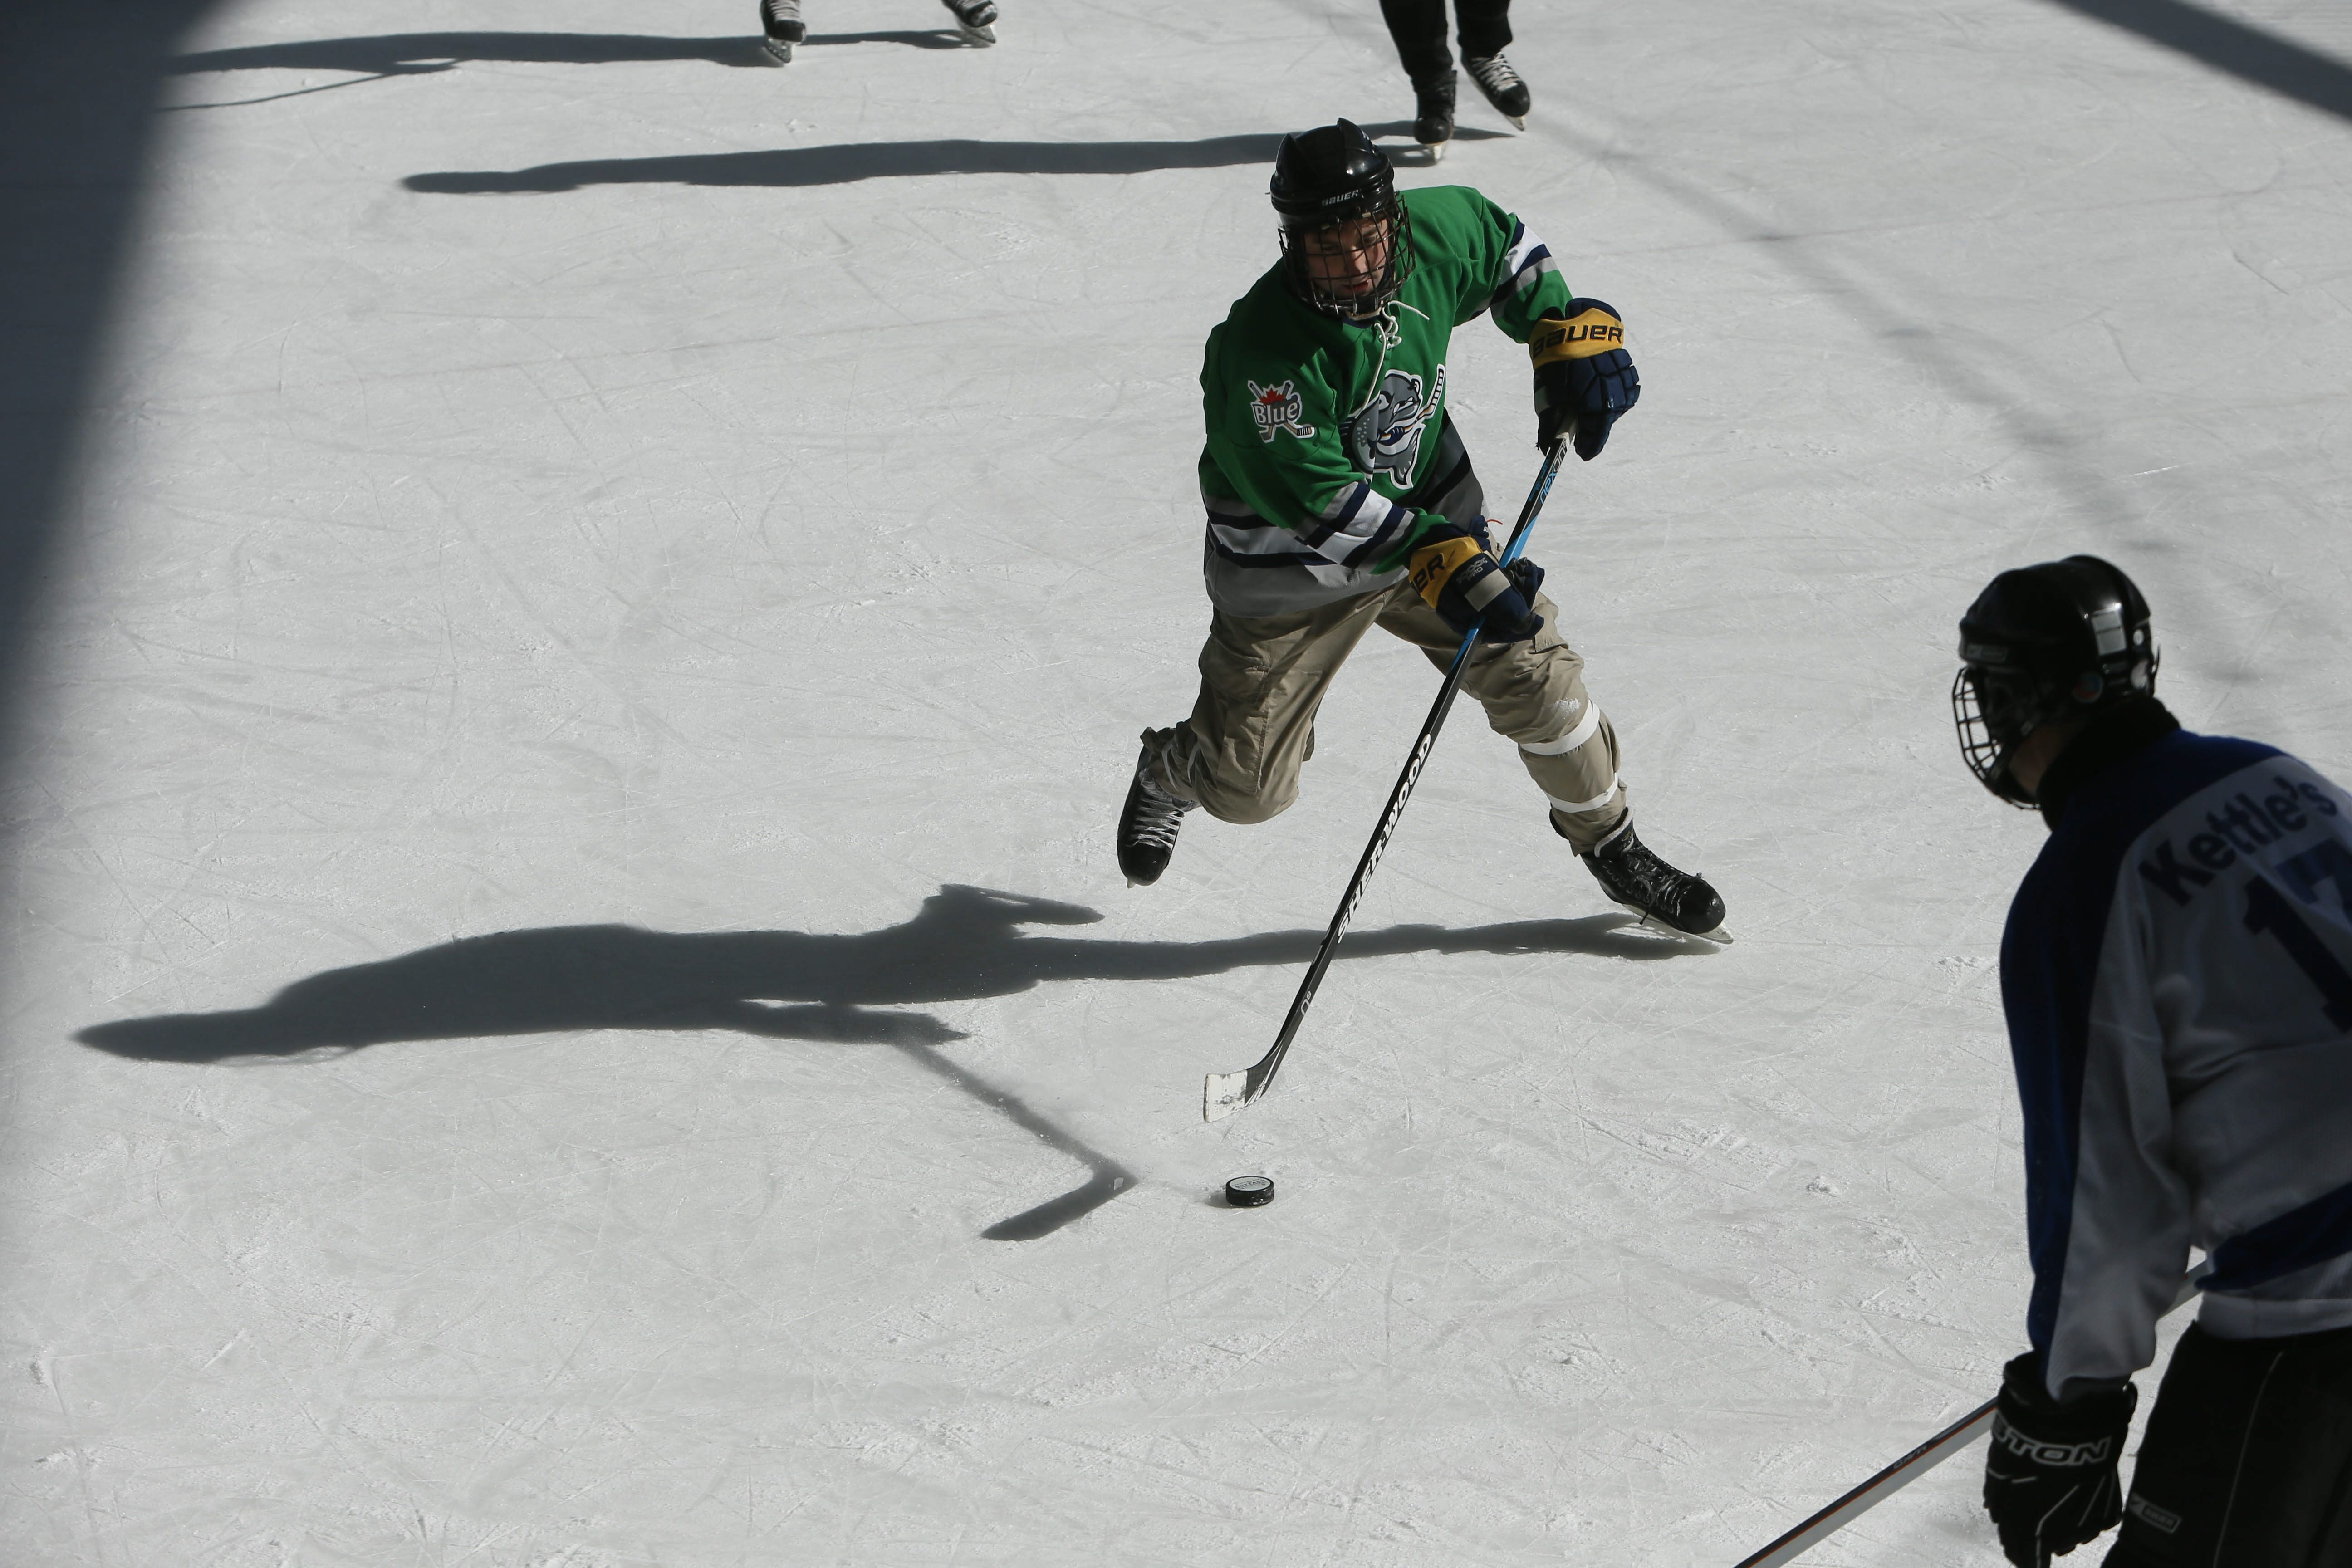 Trout Deux plays against Kettles Wings on the opening day of the Labatt Blue Buffalo Pond Hockey Tournament is underway at Buffalo RiverWorks, Feb. 20, 2015.  (Derek Gee/Buffalo News)